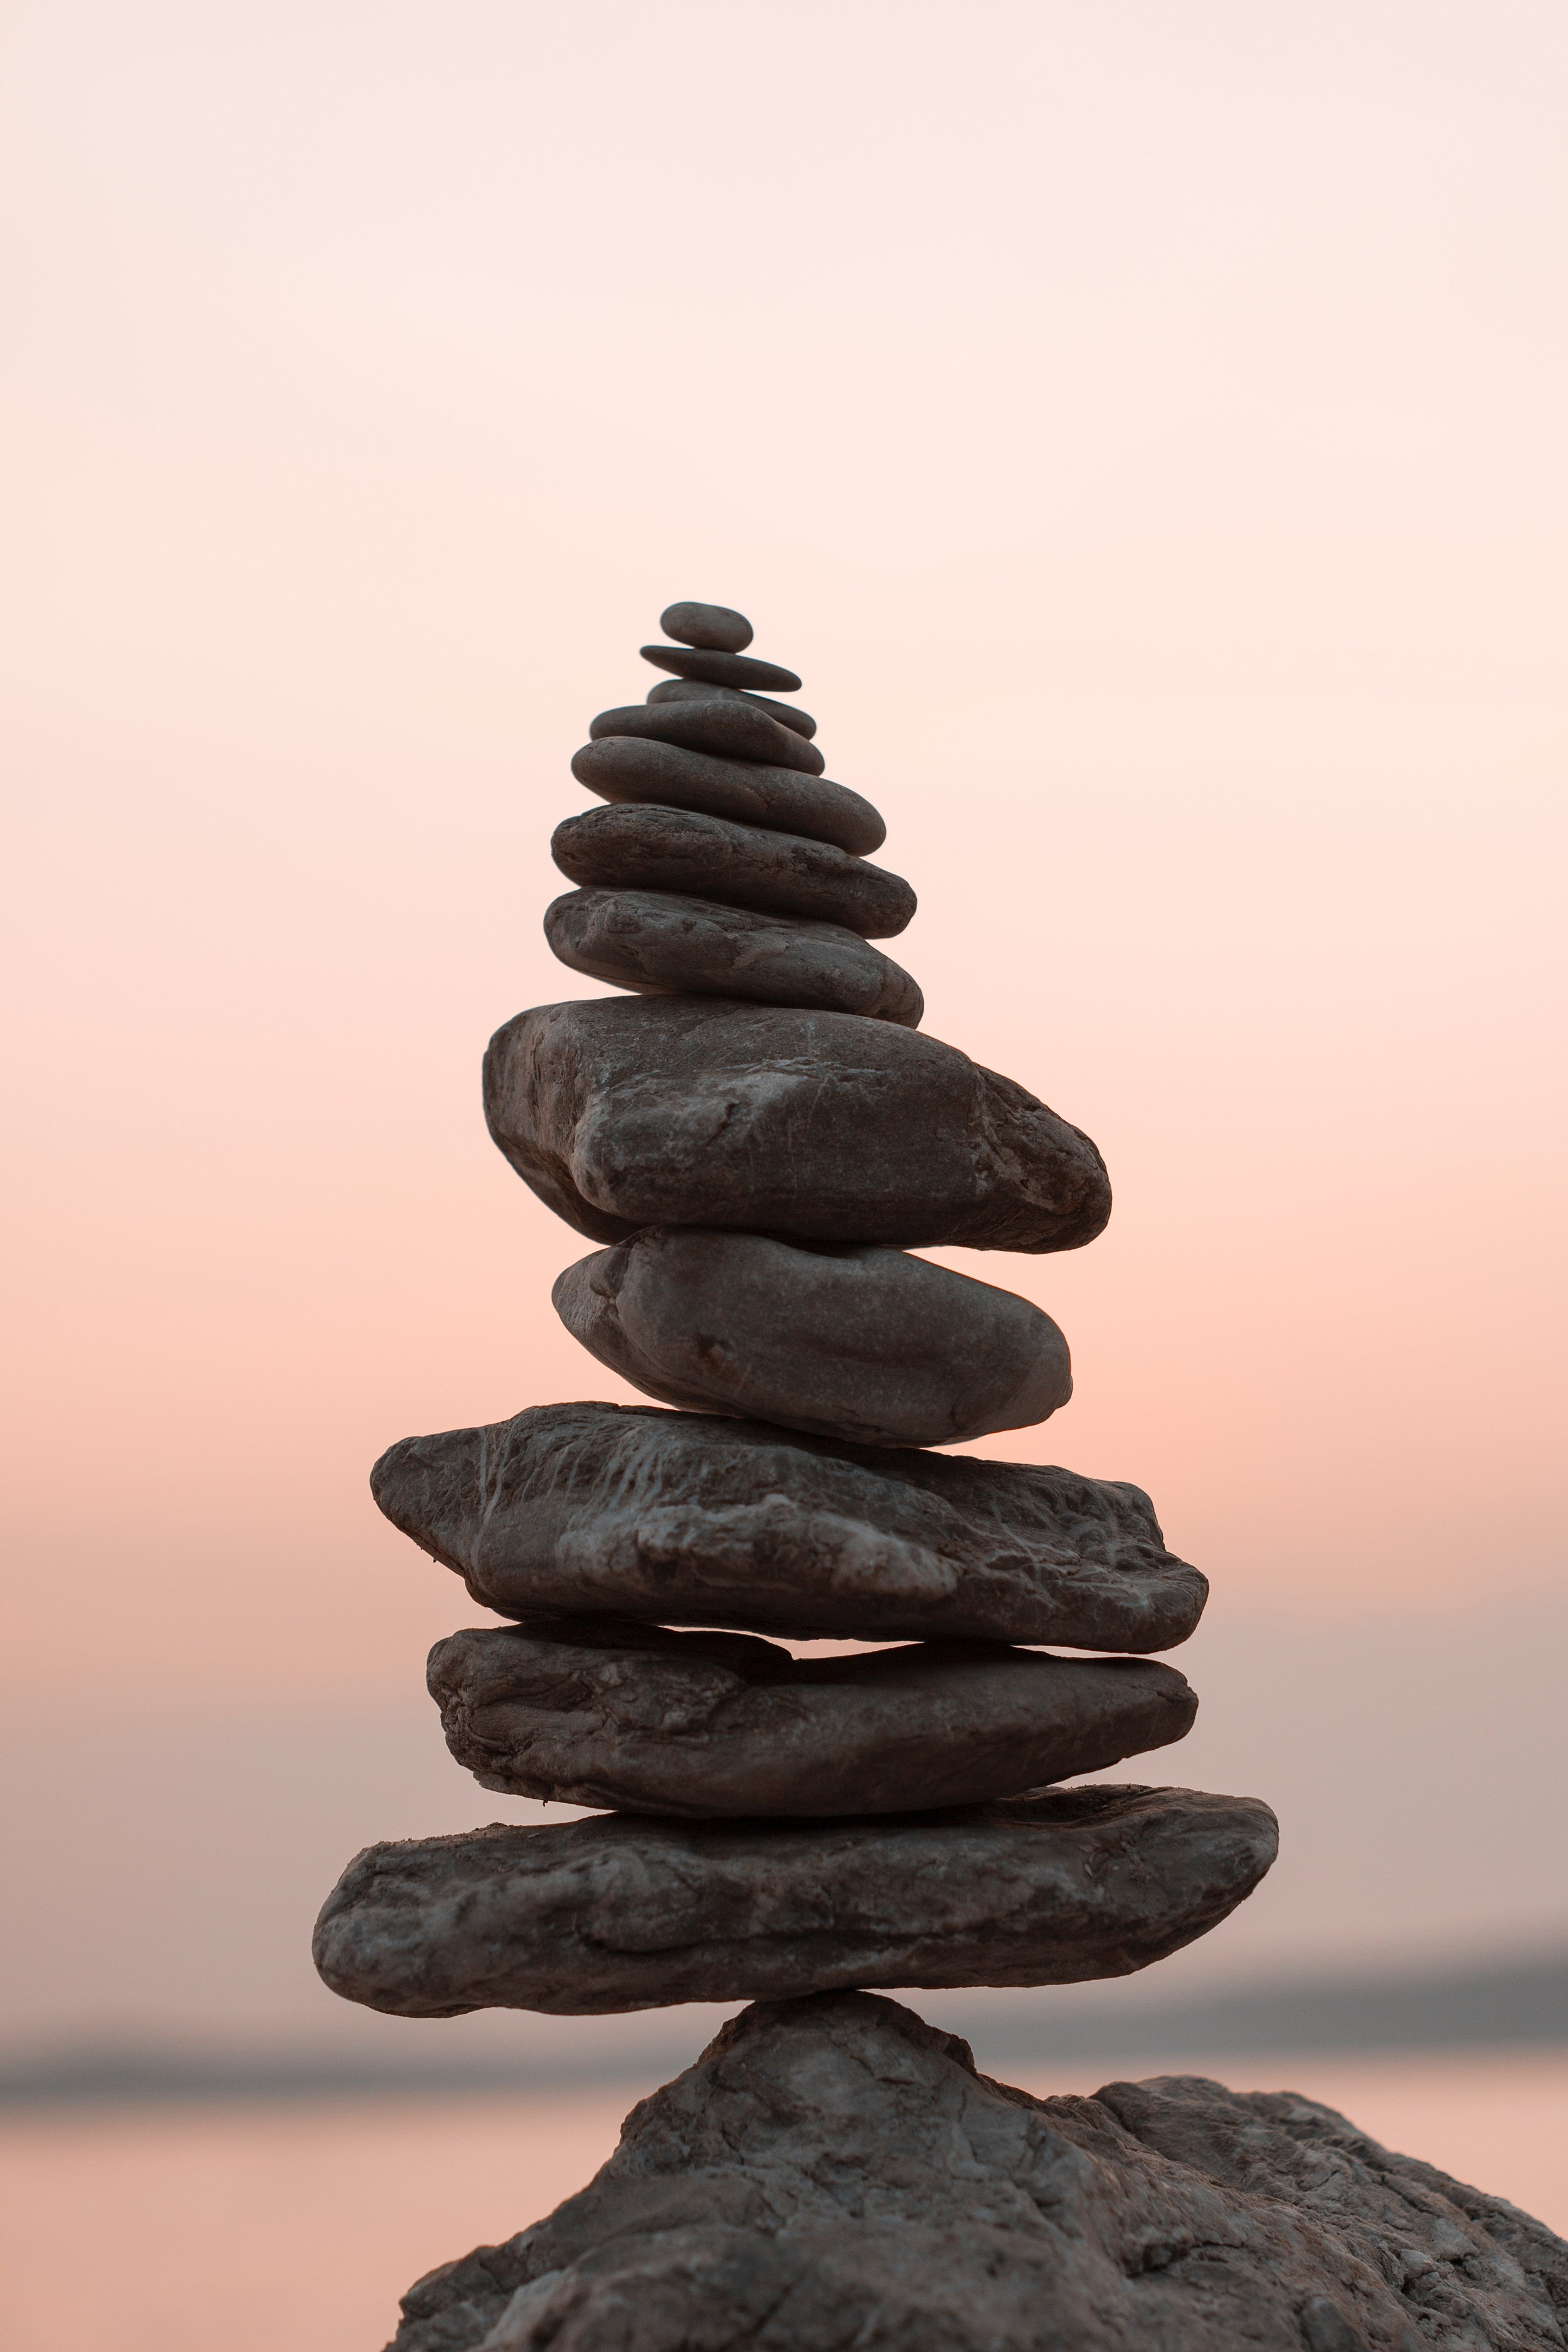 Stack of Rocks Meditation Pic.jpg